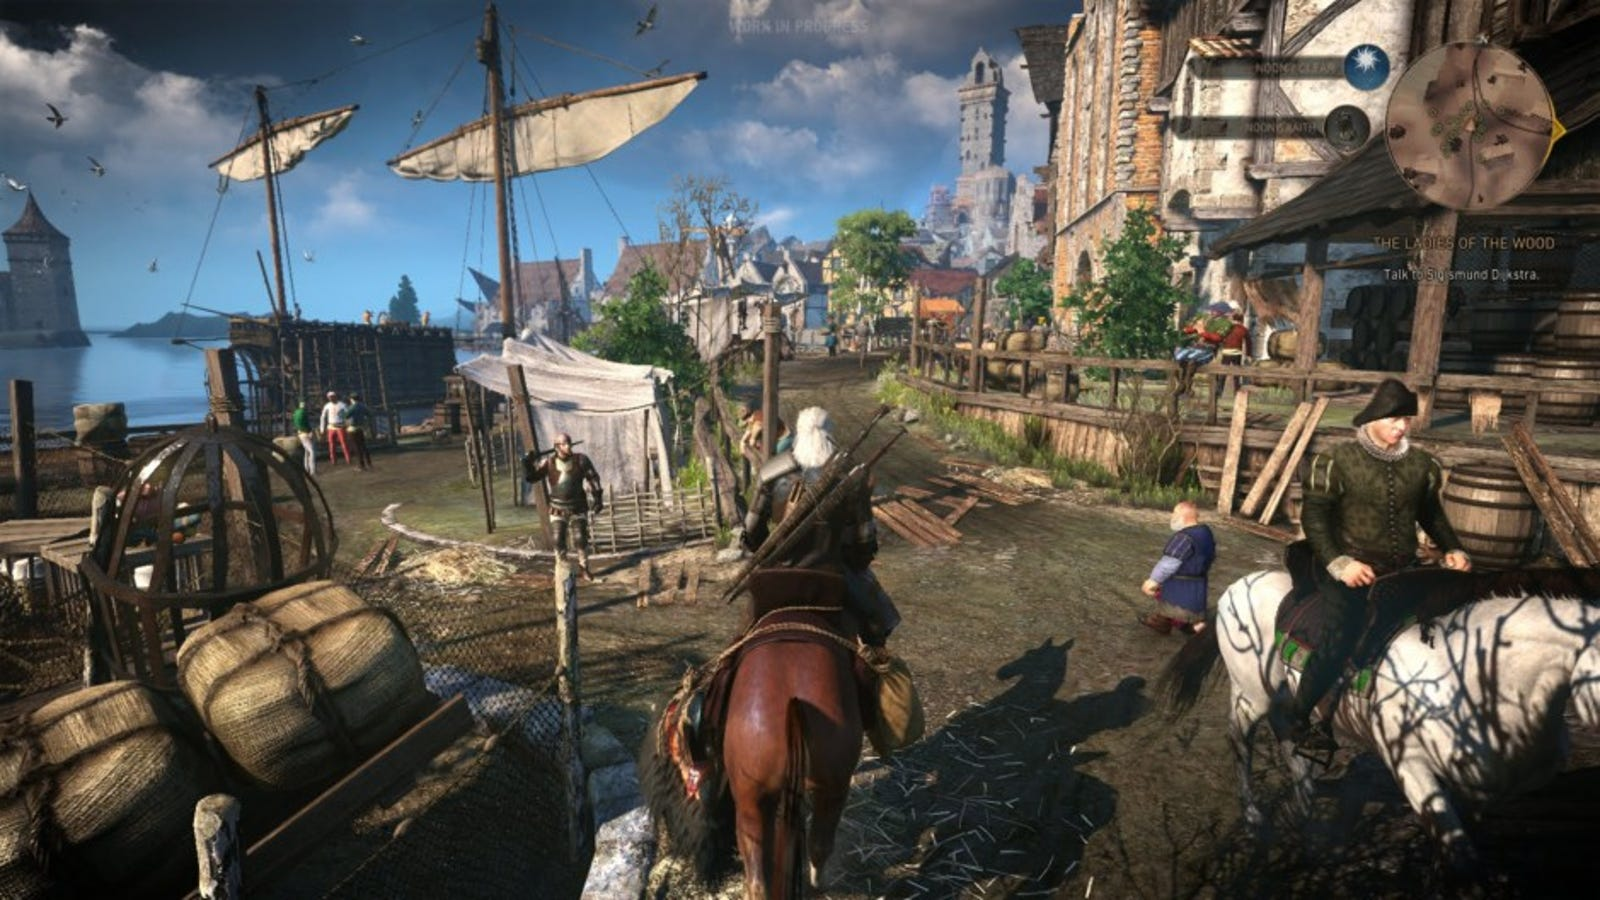 Witcher 3 Development Is Over, But One Of Its Designers Is